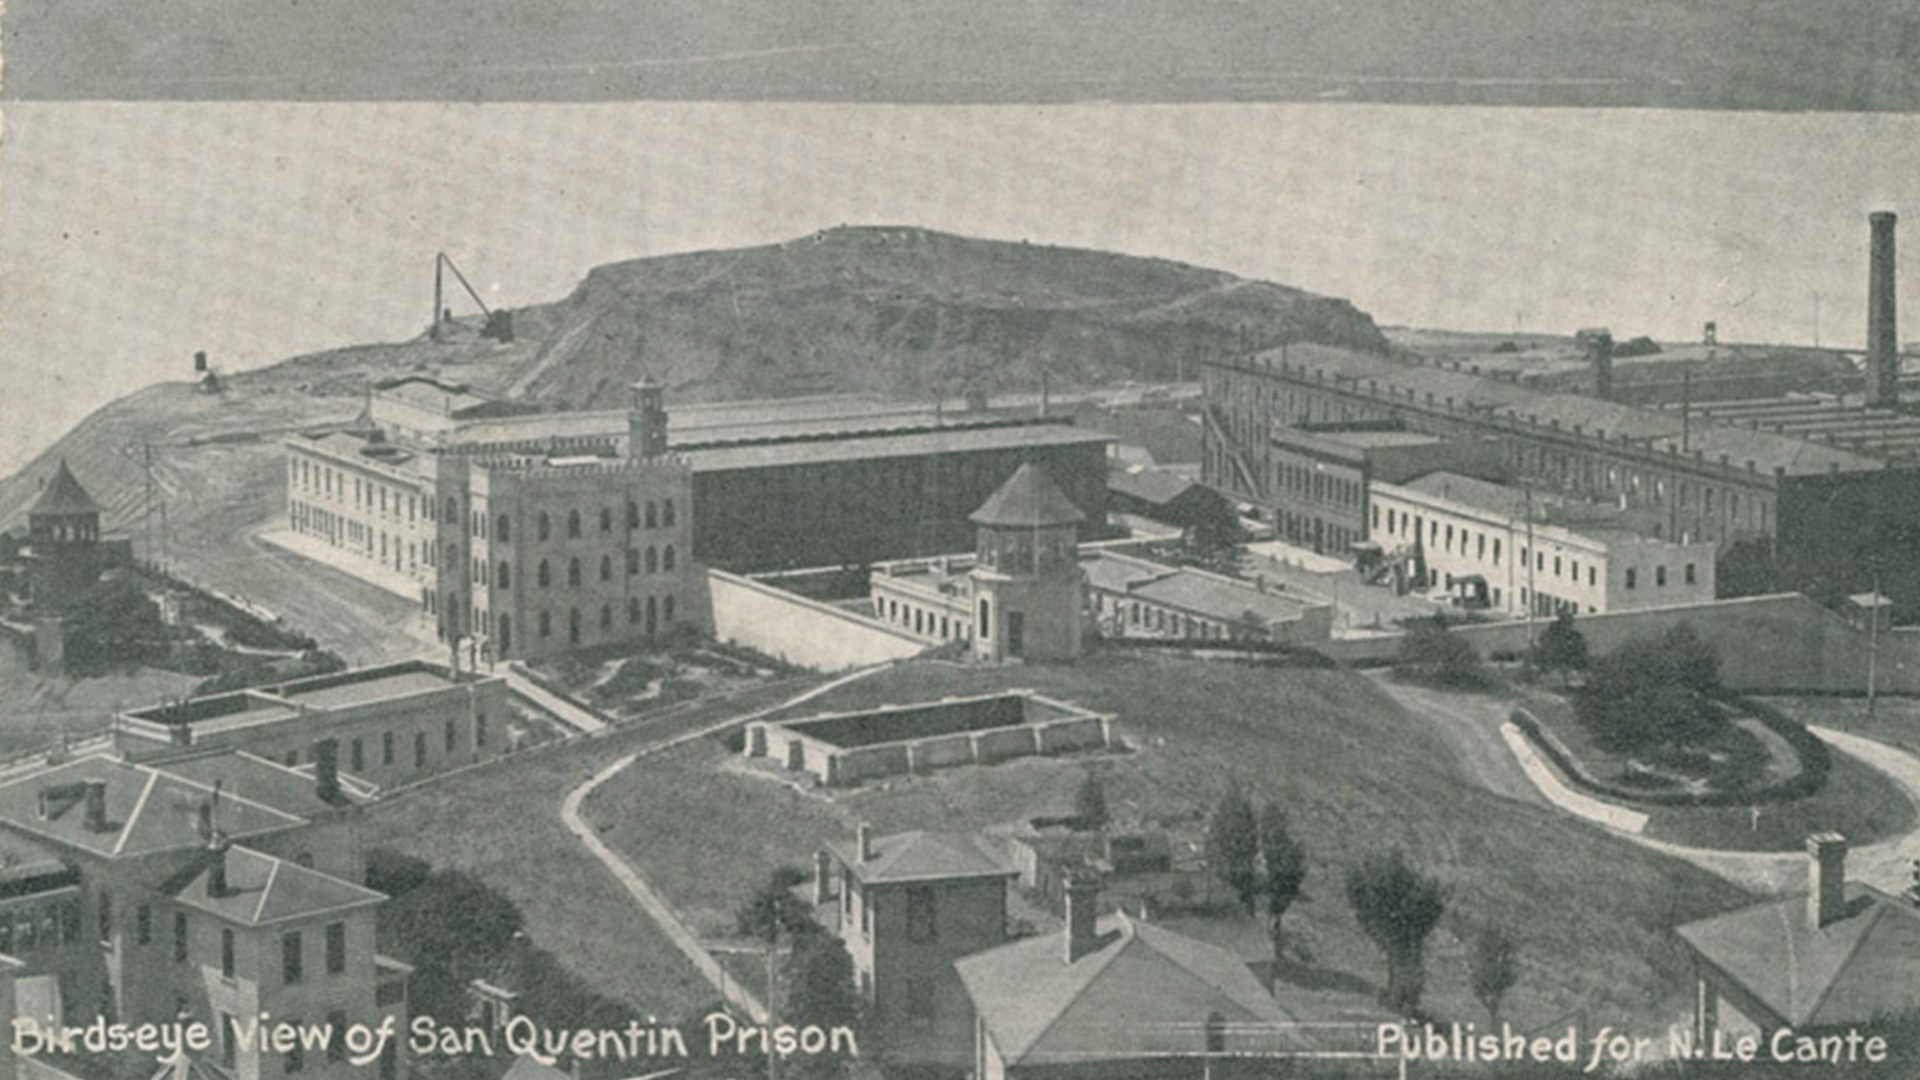 Old postcard that says Birds Eye View San Quentin Prison.